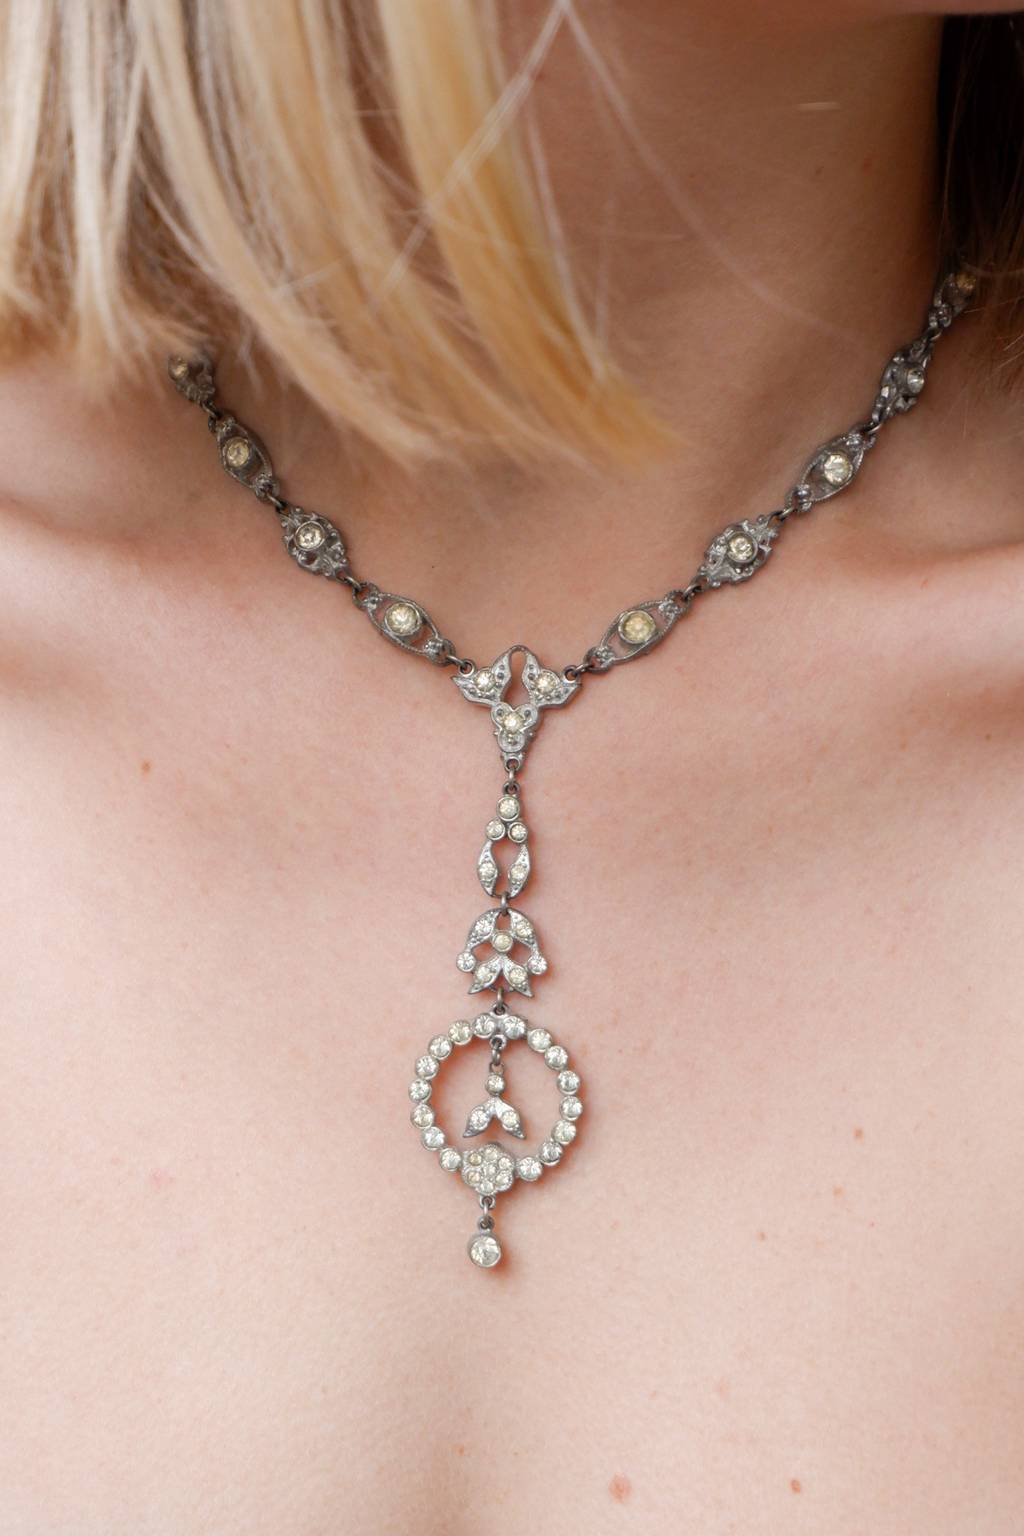 1920S NECKLACE